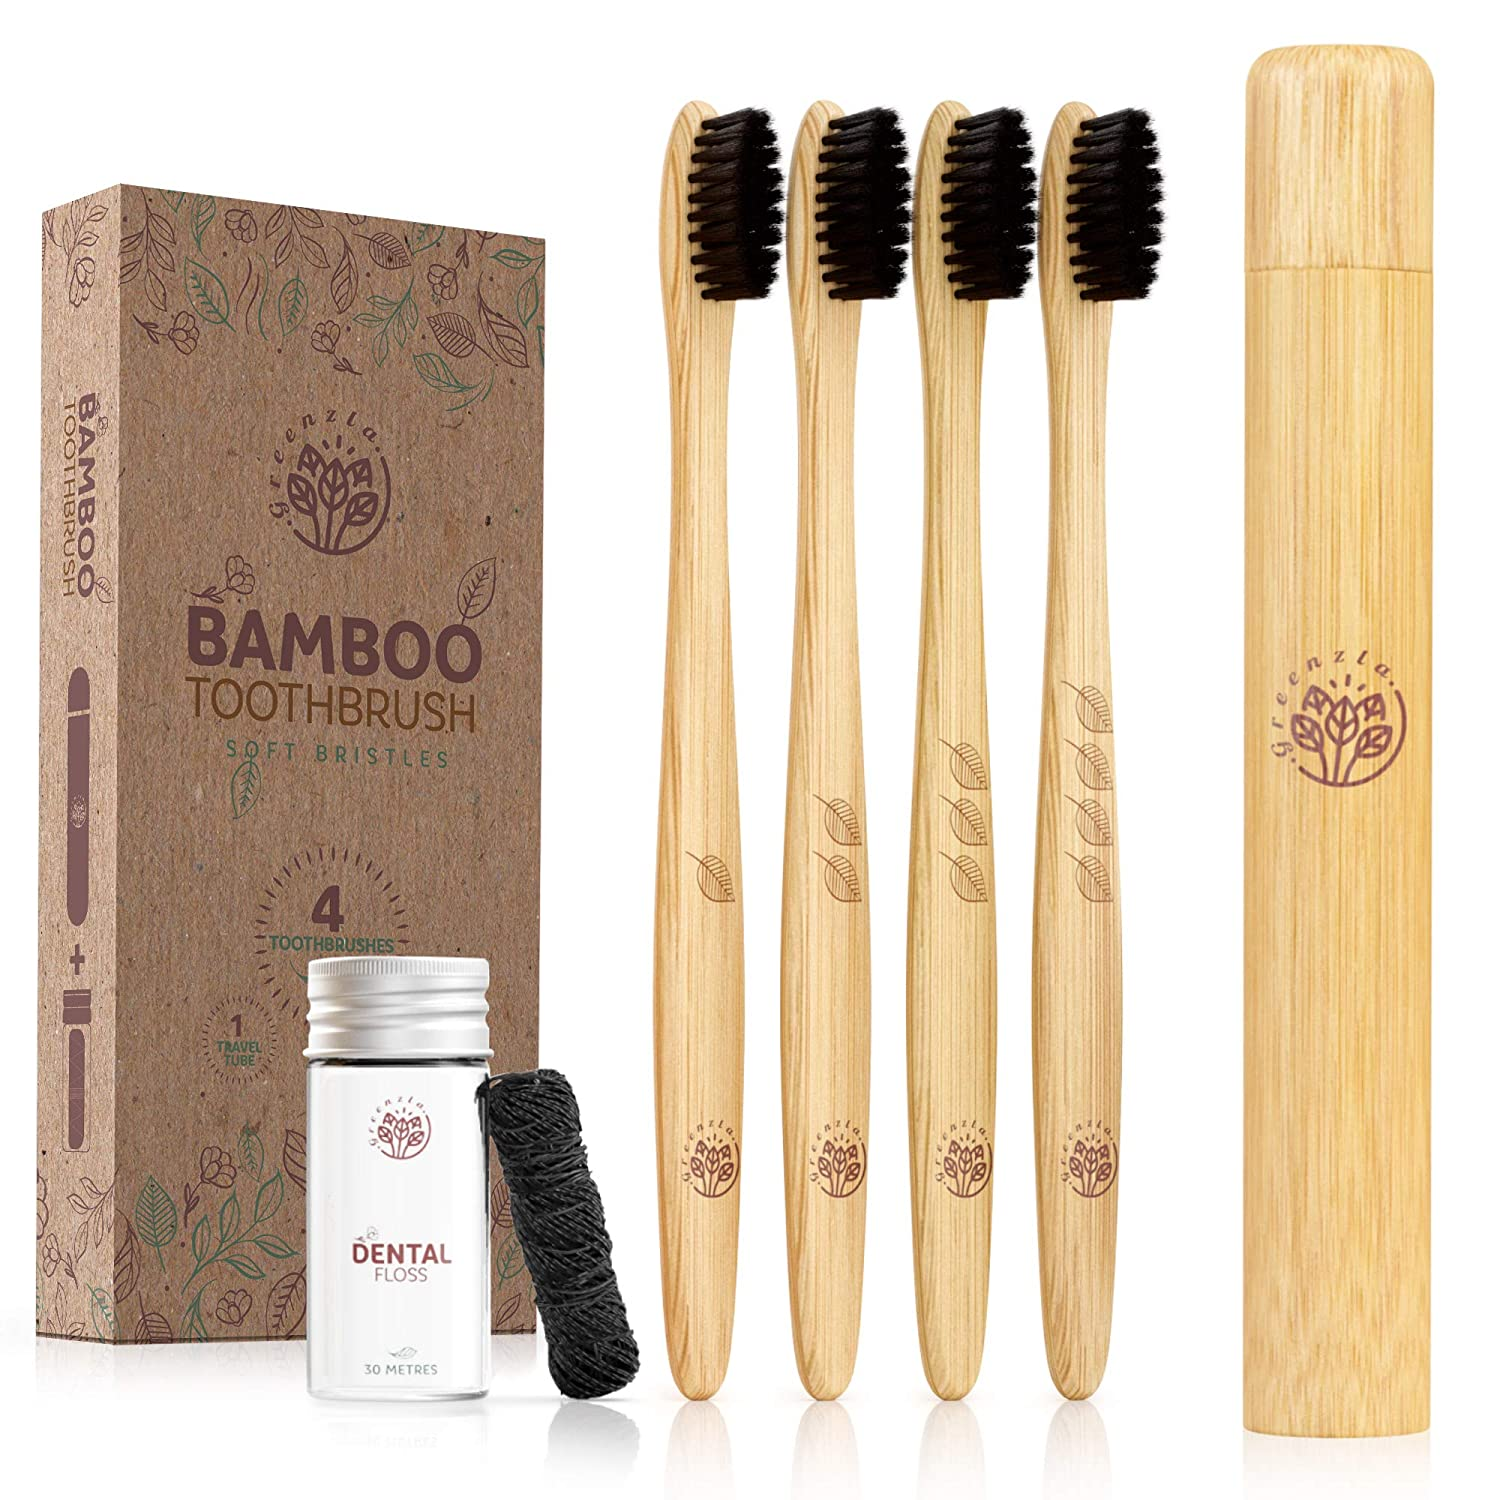 Greenzla Bamboo Toothbrush (4 Pack) With Travel Toothbrush Case & Charcoal Dental Floss in Small Jar | Natural Eco Friendly Toothbrushes for Adults | BPA Free , Soft & Biodegradable Wooden Toothbrush